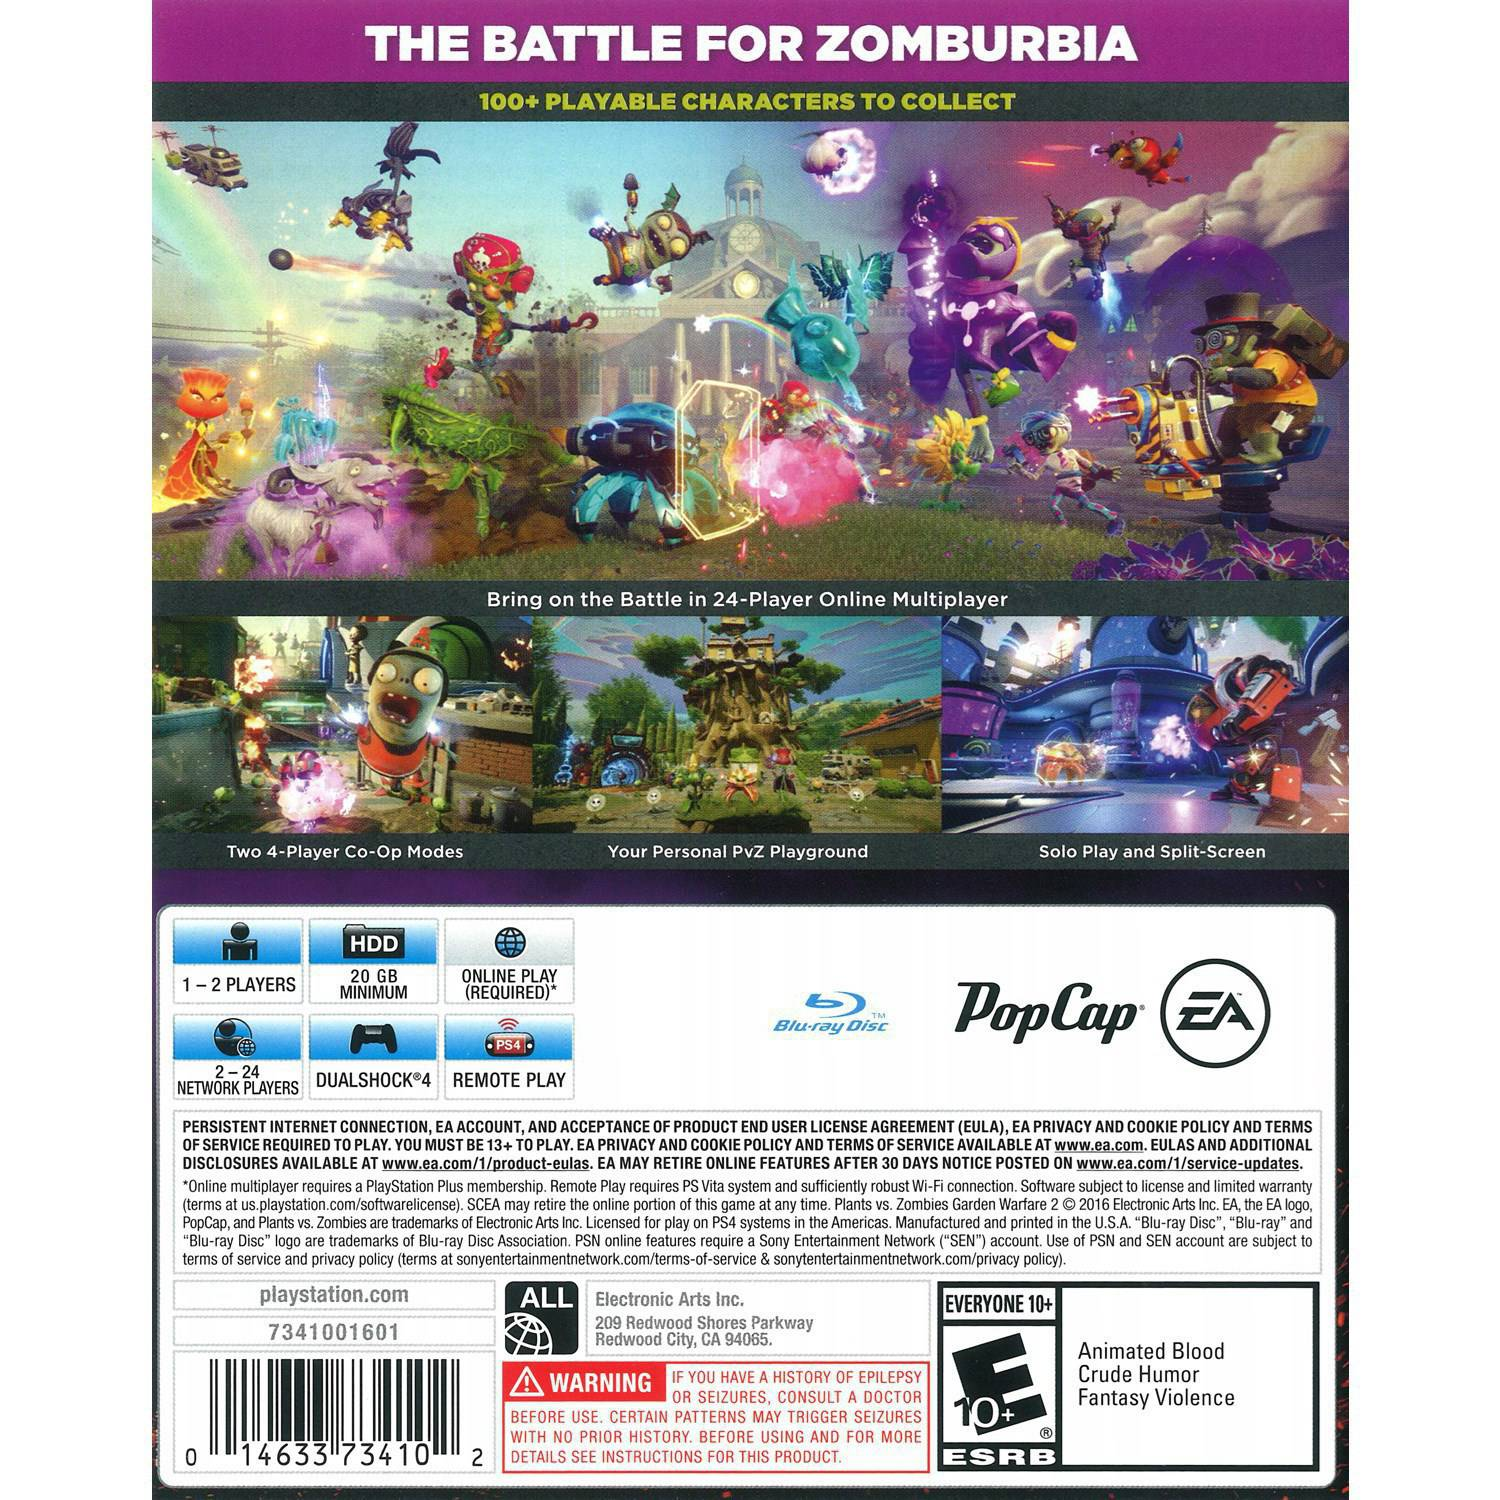 Plants Vs Zombies Garden Warfare 2 Electronic Arts Playstation 4